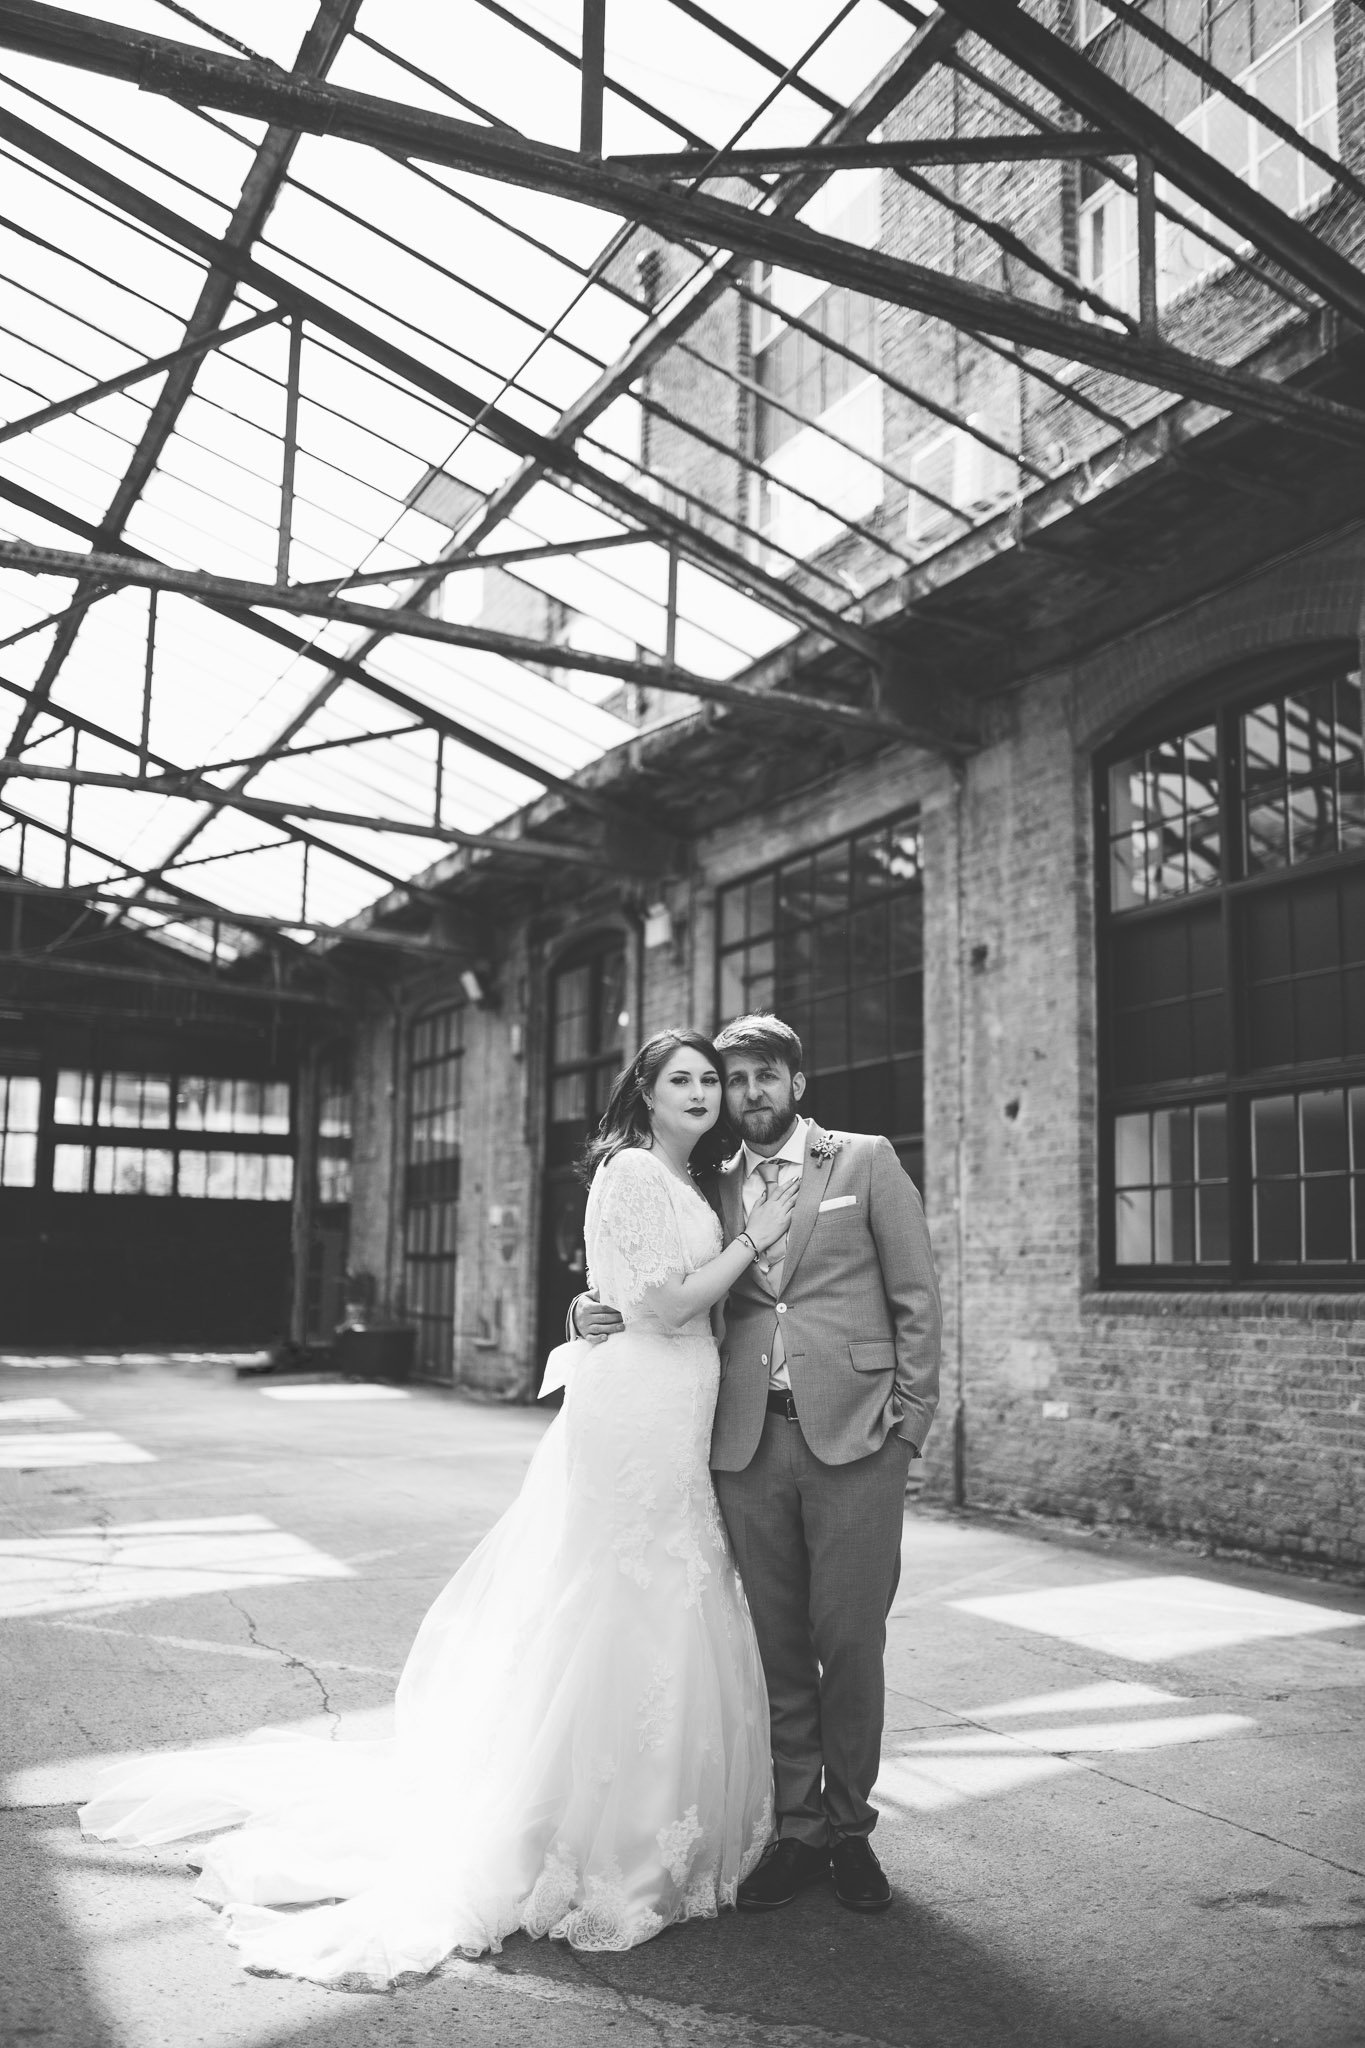 A newly married couple pose for their wedding portrait outside The Depot bar in North London. They stand hugging in front of some industrial buildings. Photography by thatthingyoupluck.